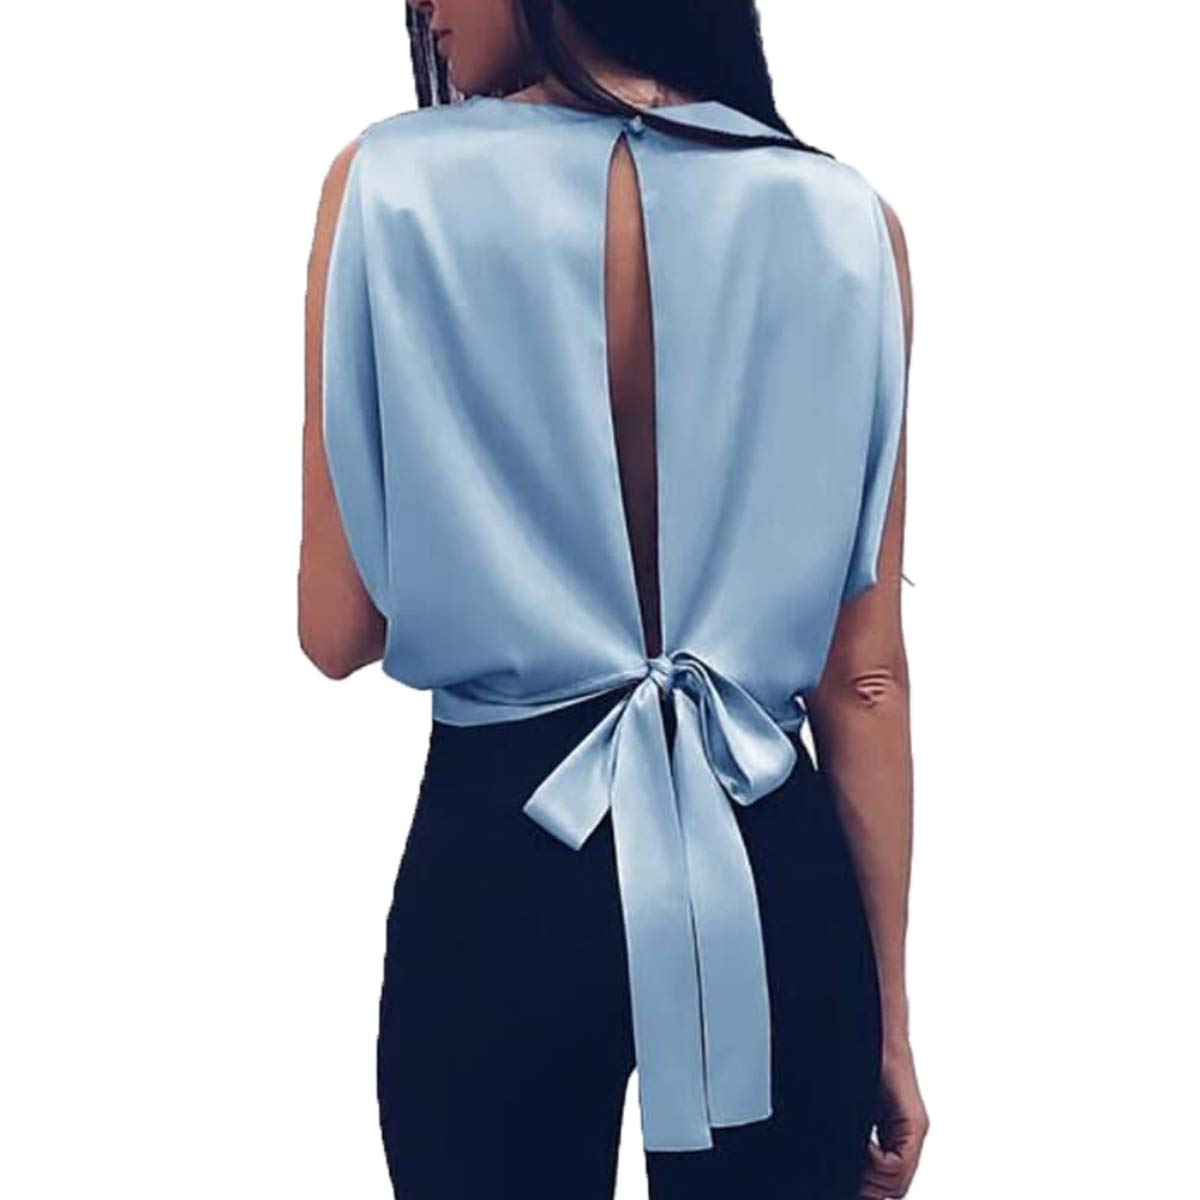 Fashion Womens Sleeveless Round Neck Solid Color Vest Bow Backless Top Vest T-Shirt